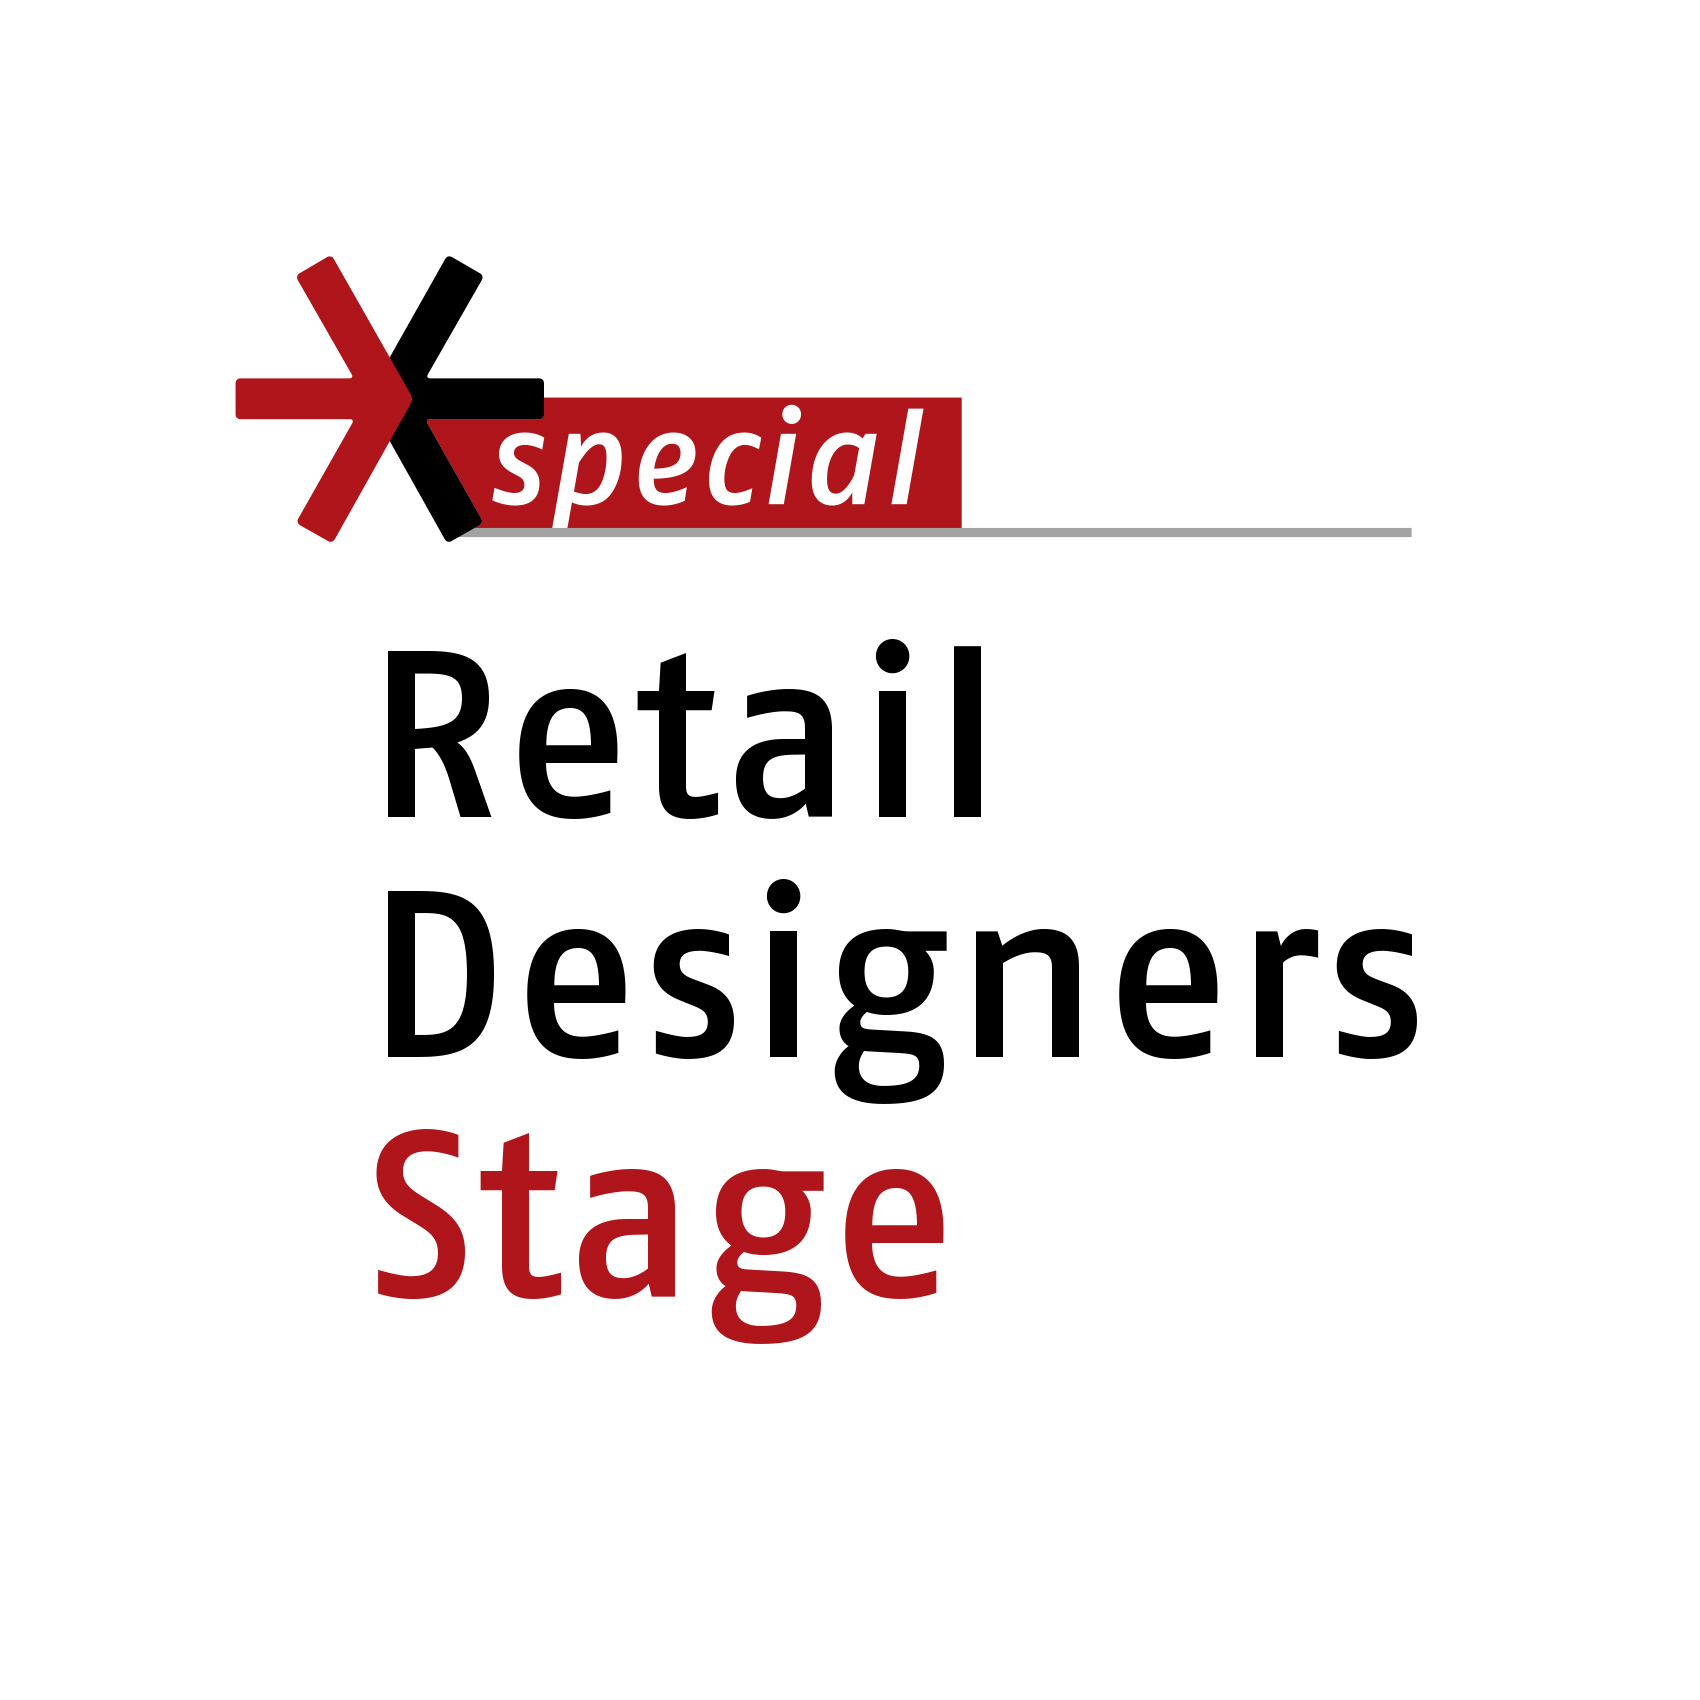 Retail Designers Stage